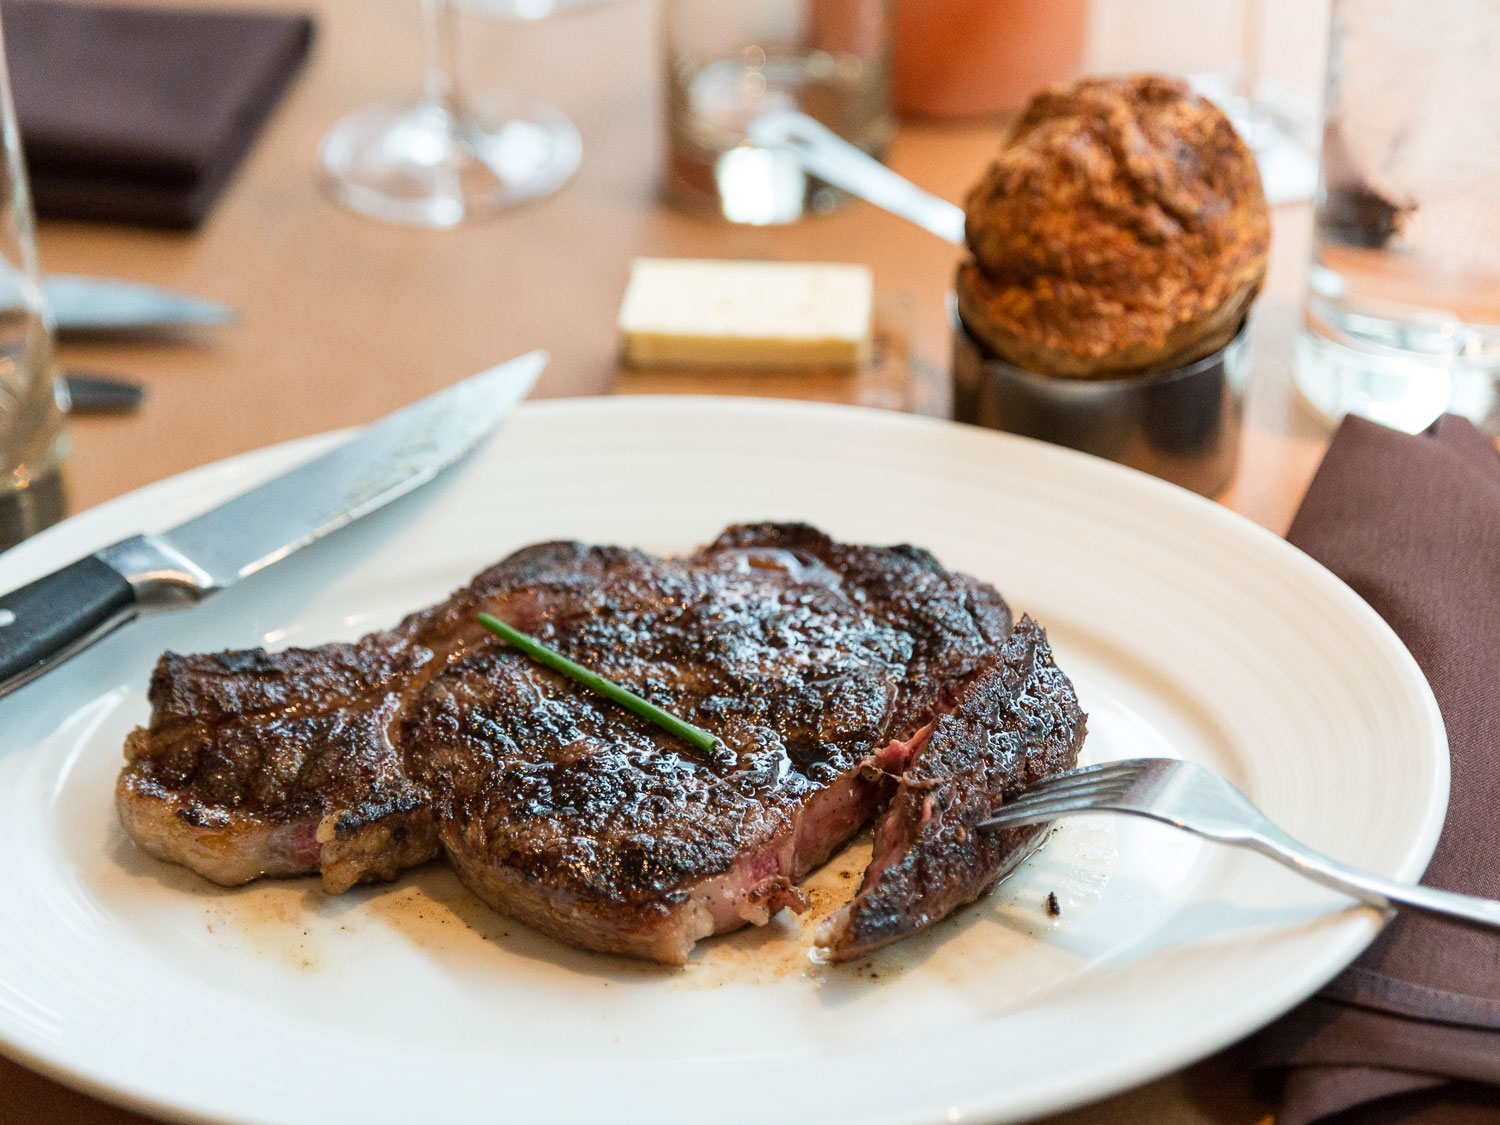 40-day dry aged Creekstone Farms ribeye steak [Photo: Serious Eats]